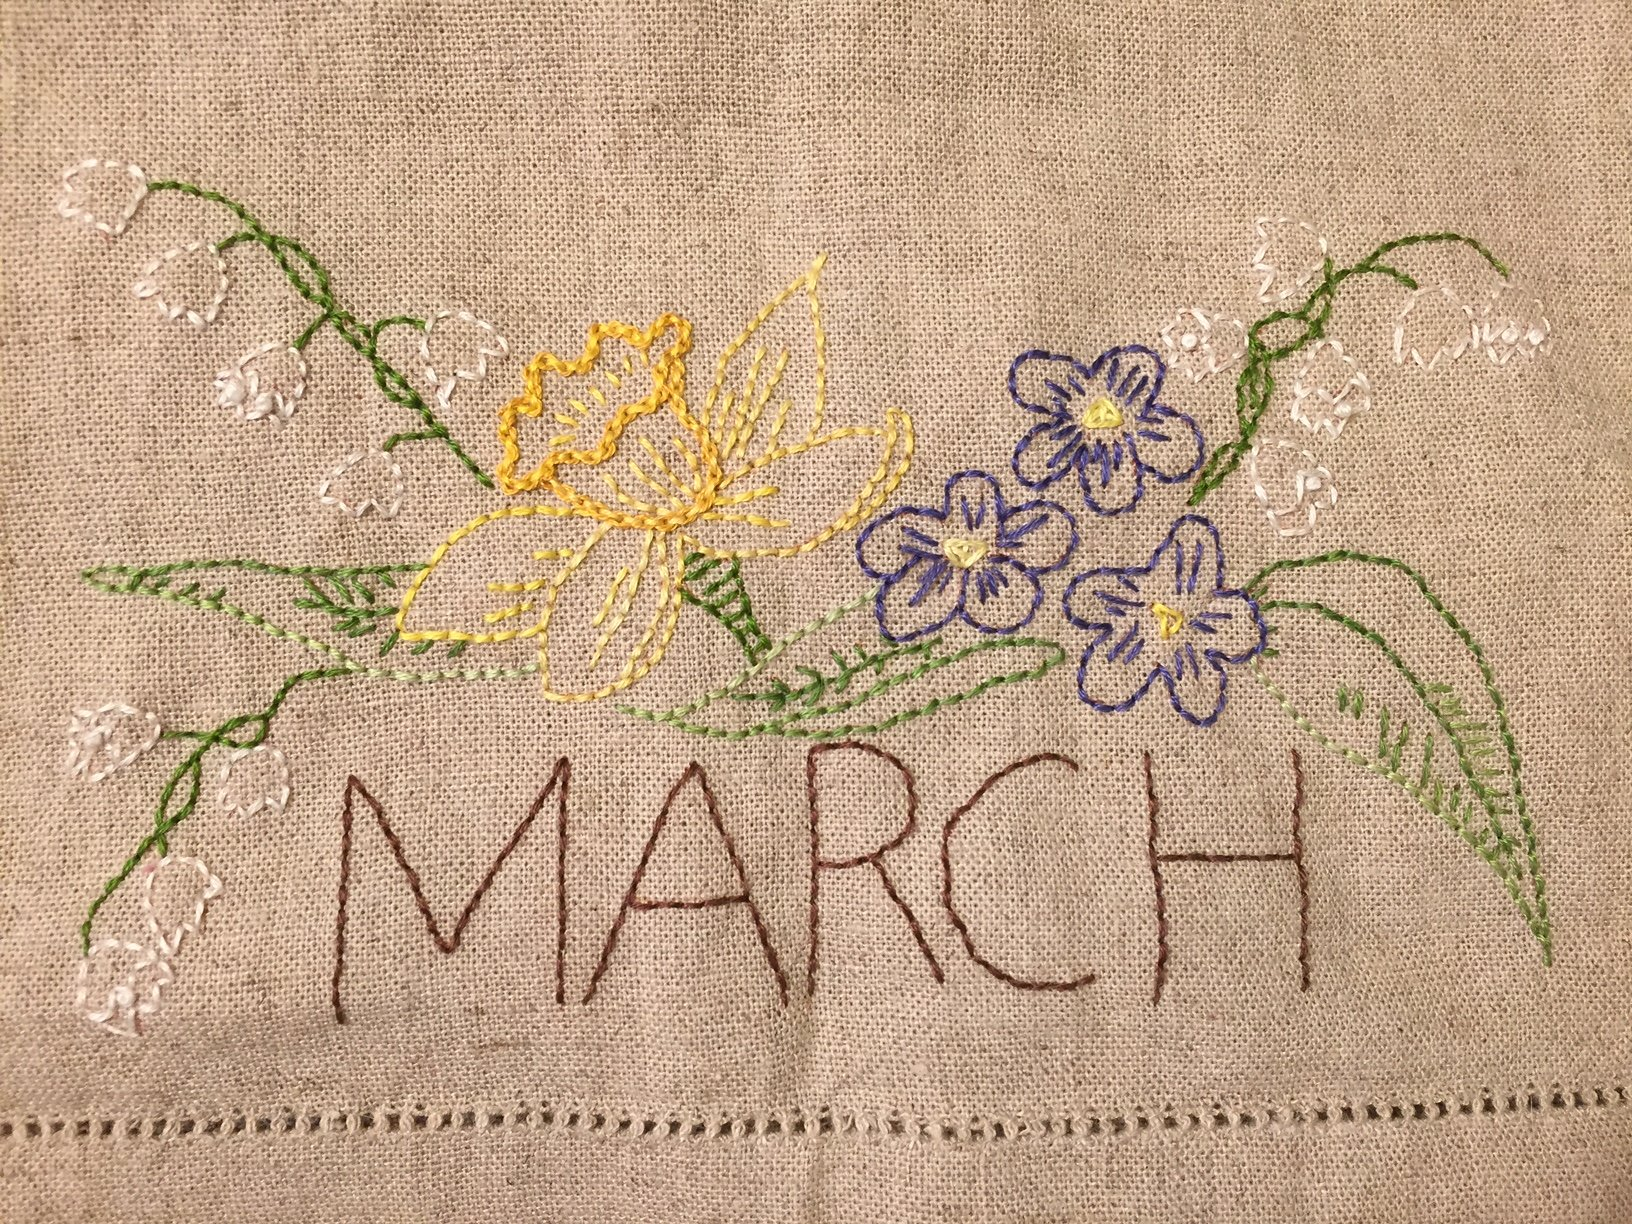 March Embroidery towel pattern